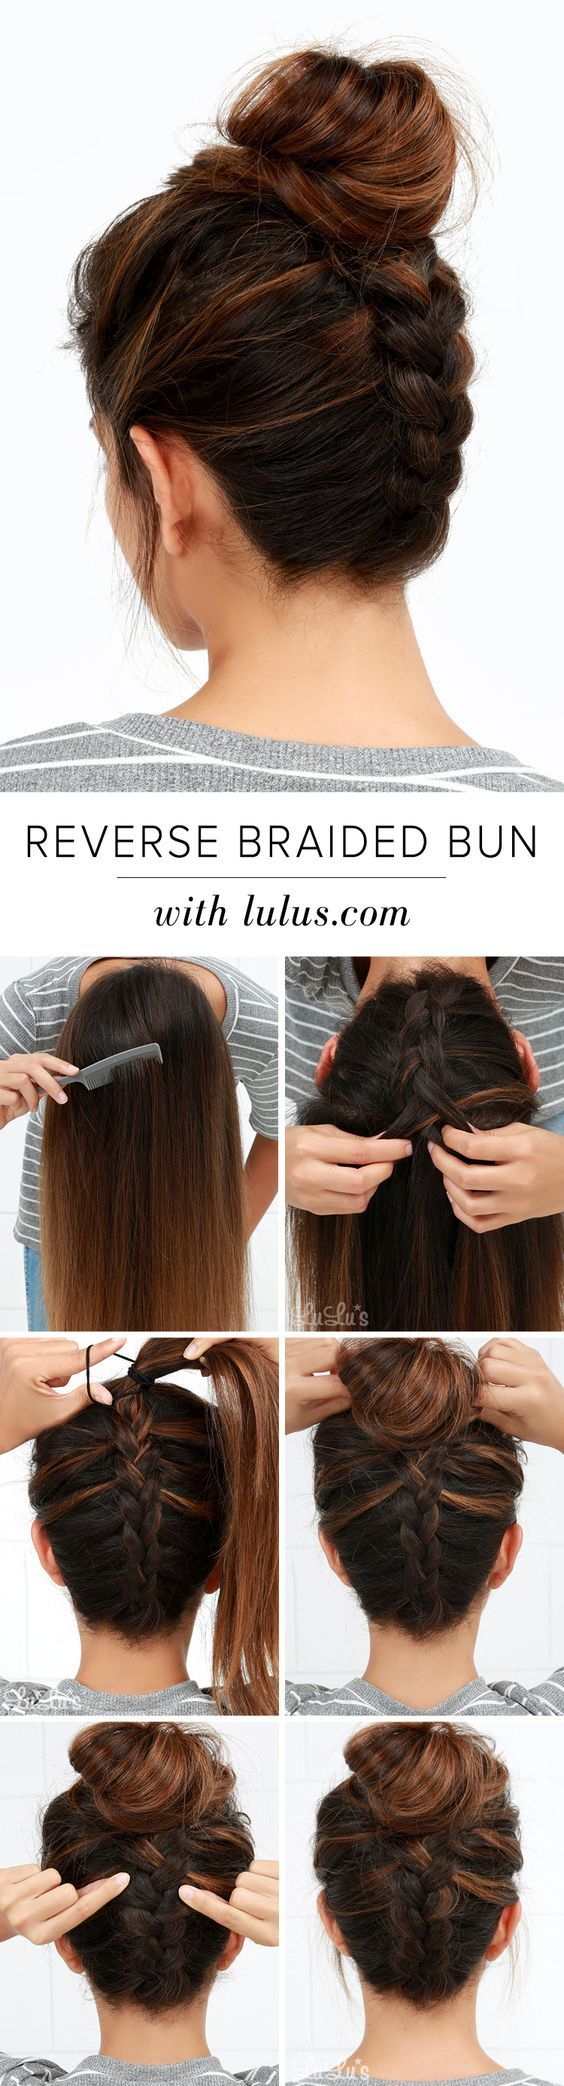 DIY Messy Buns That Only Take Minutes